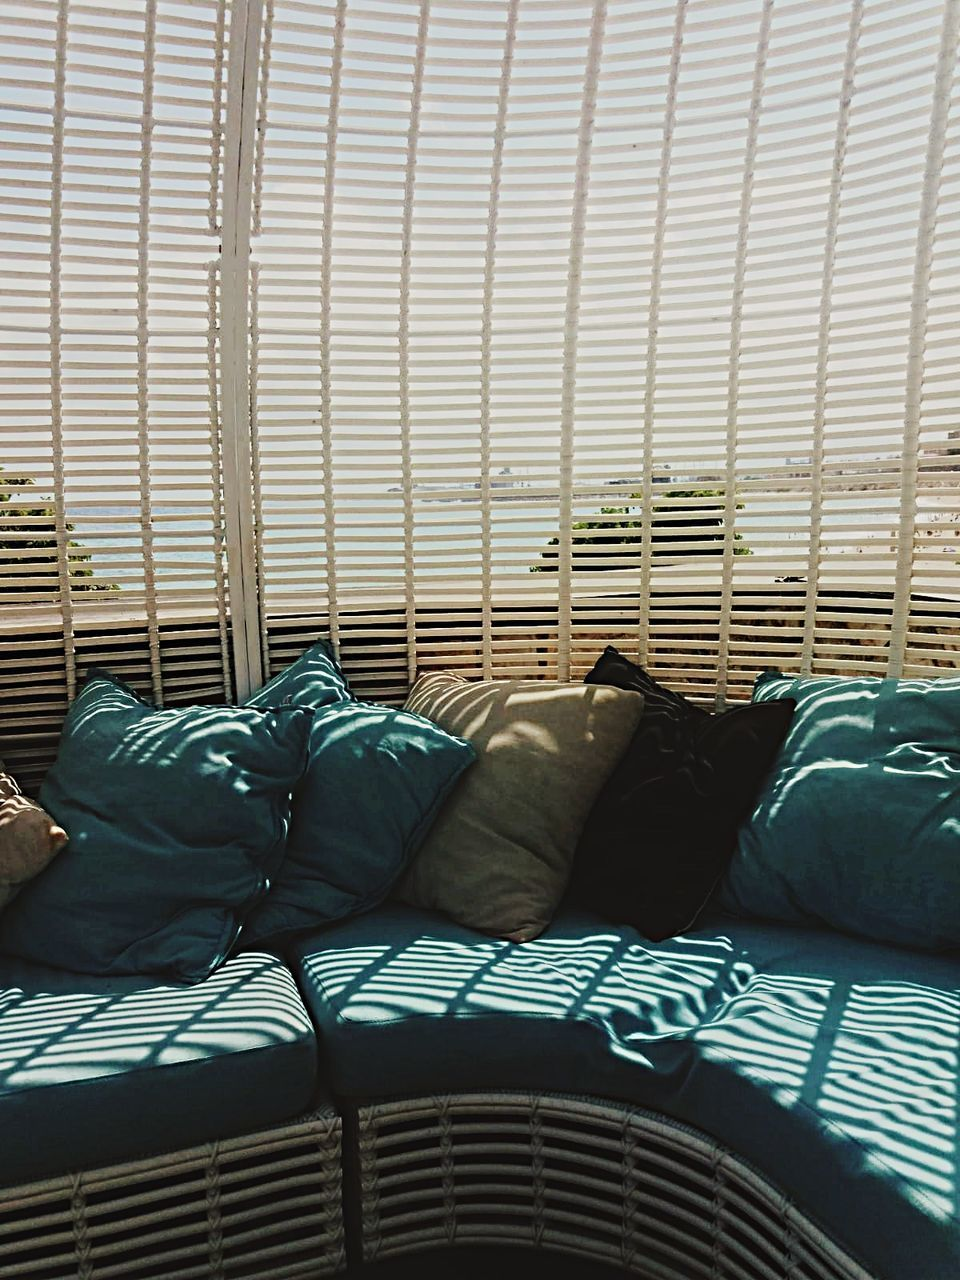 furniture, bed, relaxation, indoors, pillow, domestic room, lying down, one person, real people, bedroom, window, resting, stuffed, blanket, sheet, blinds, men, linen, textile, duvet